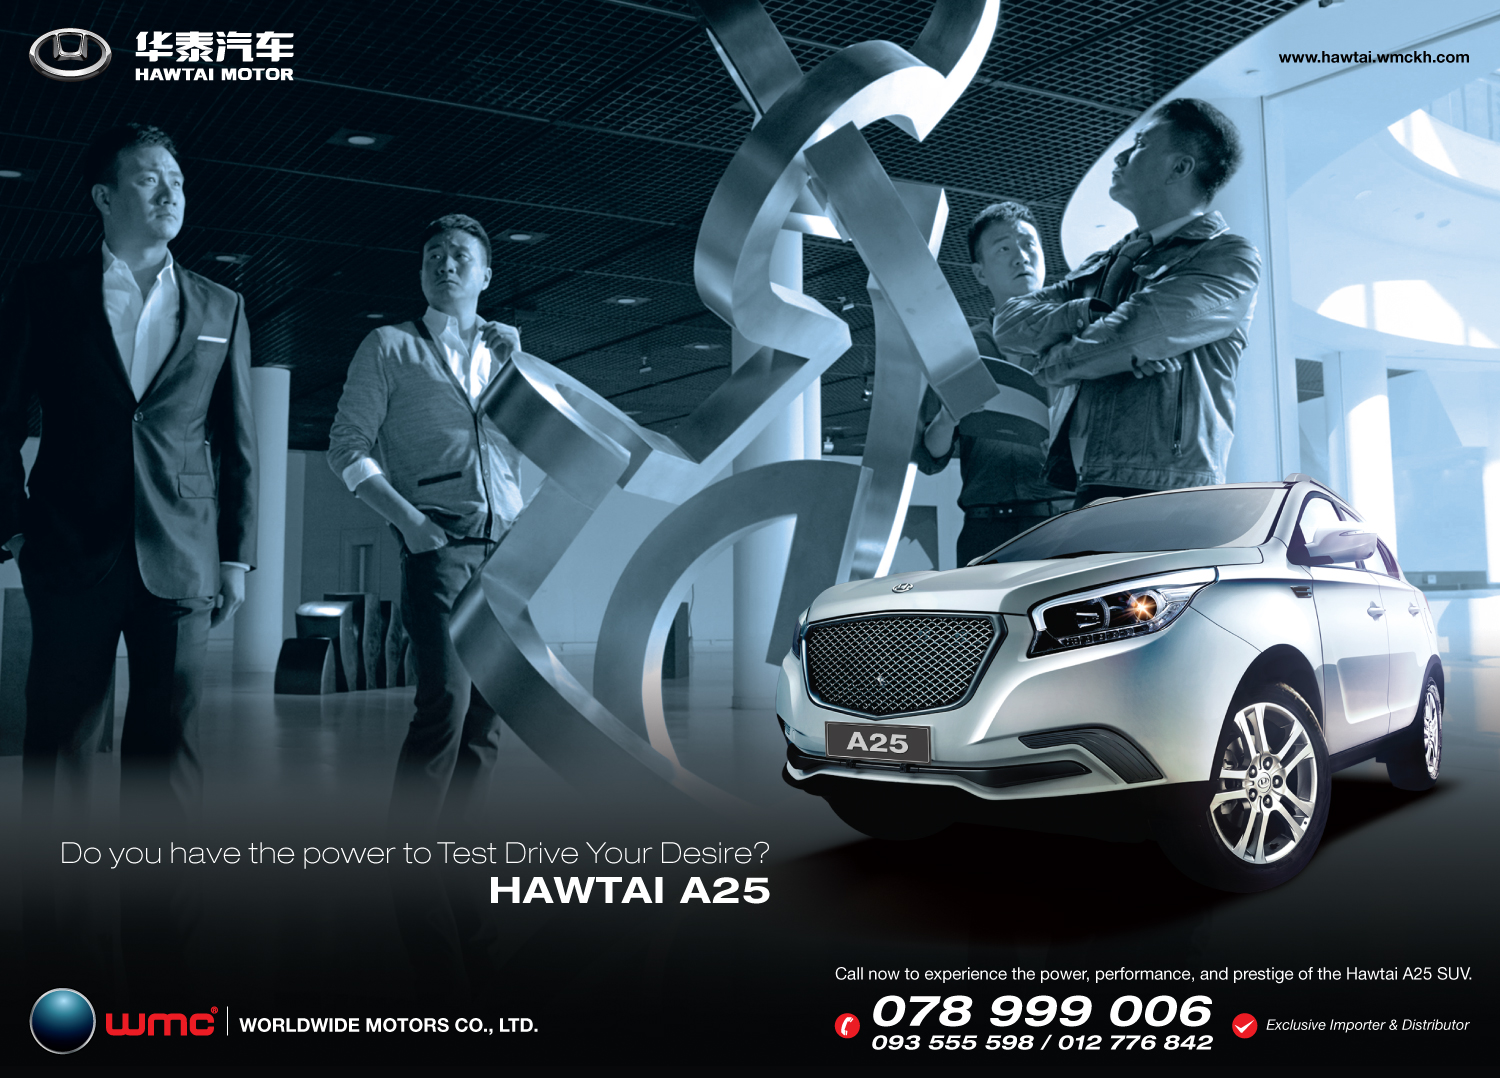 ... HAWTAI MOTOR in Cambodia and has a high-profile showroom with advanced  servicing facilities on Russian Boulevard where customers are invited to  view the ... 644088e9e646a